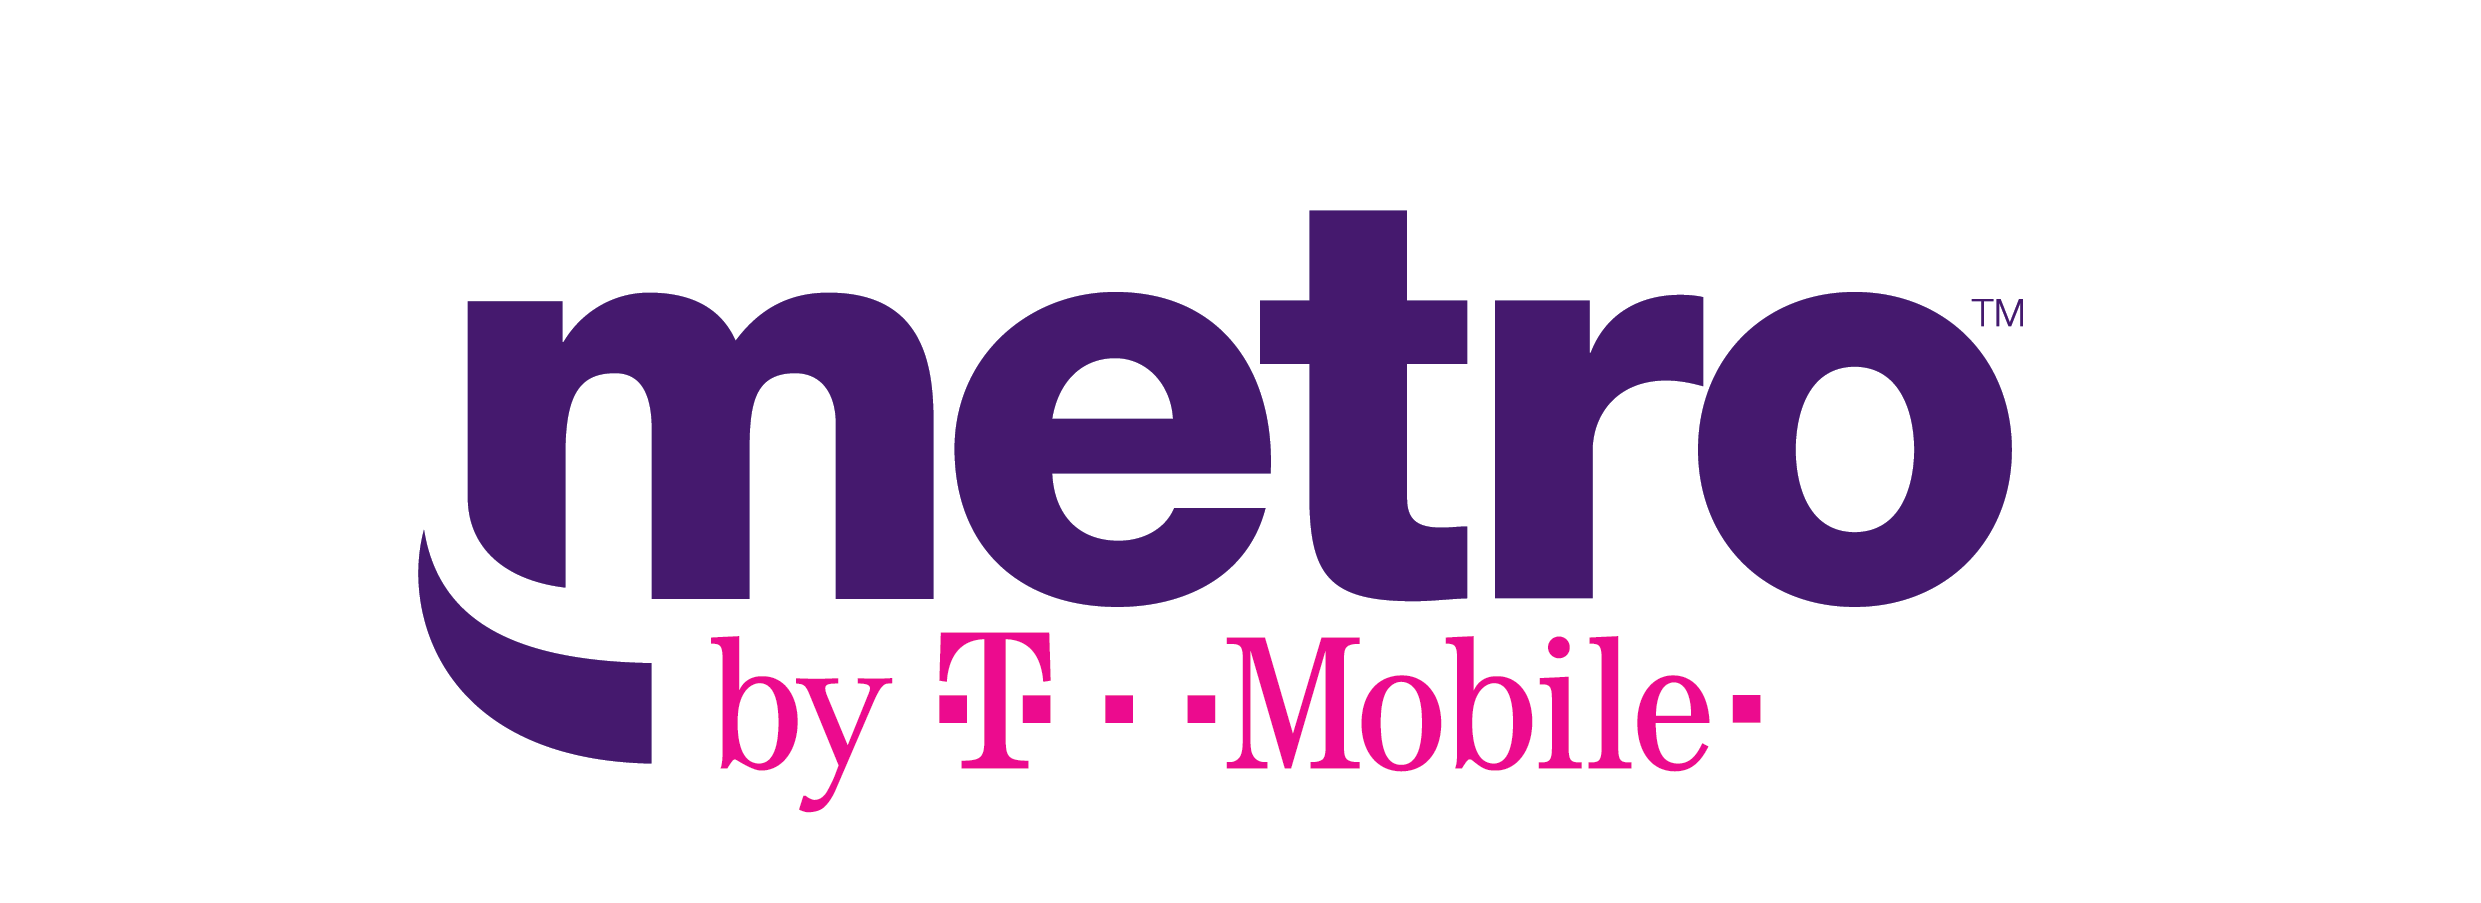 Metro by T-Mobile Review 2019: Did the Metro PCS Merger Help?